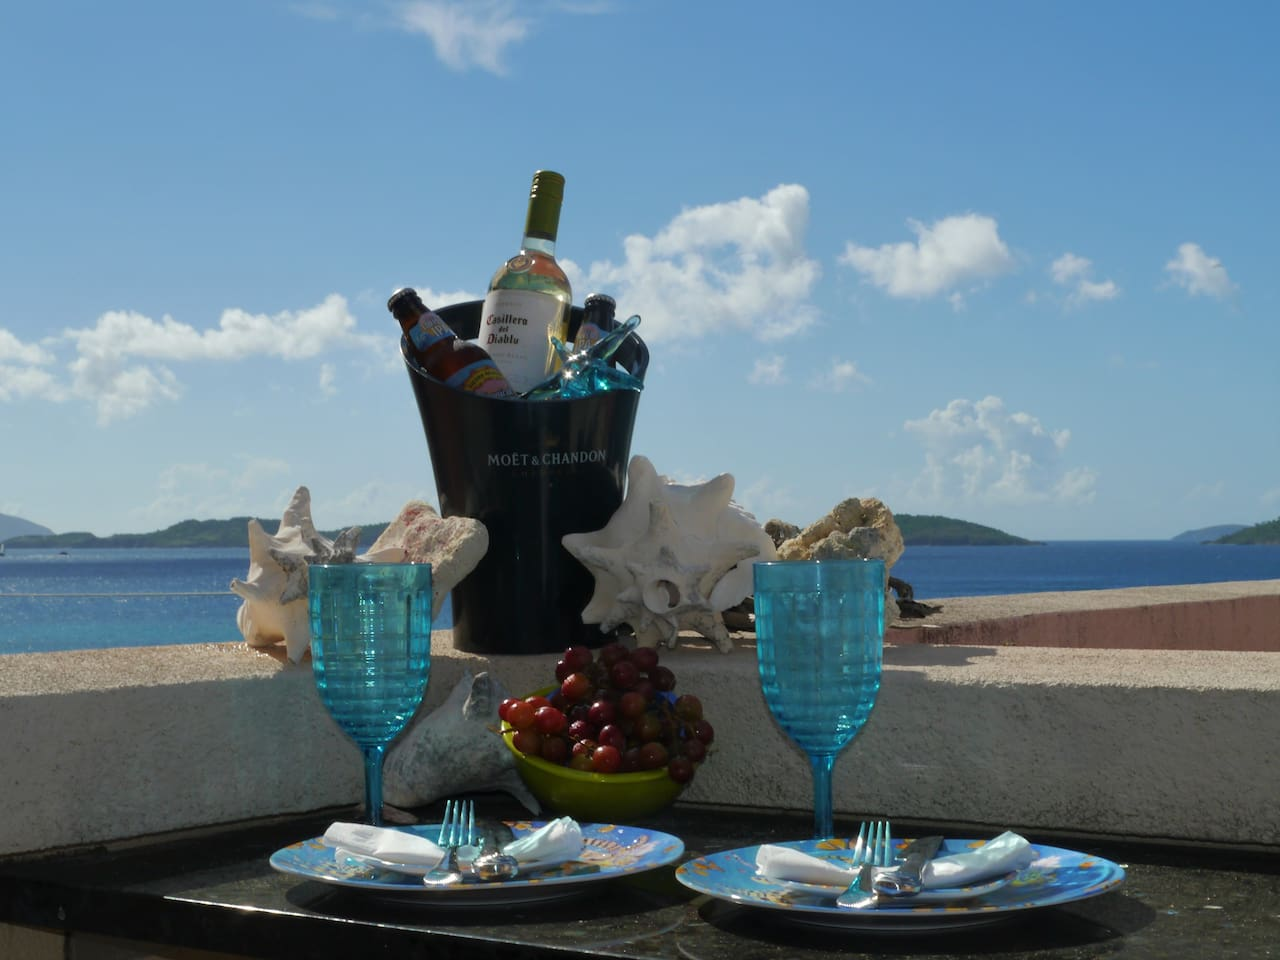 The perfect place to stay is J2O, The Penthouse at Grande Bay!